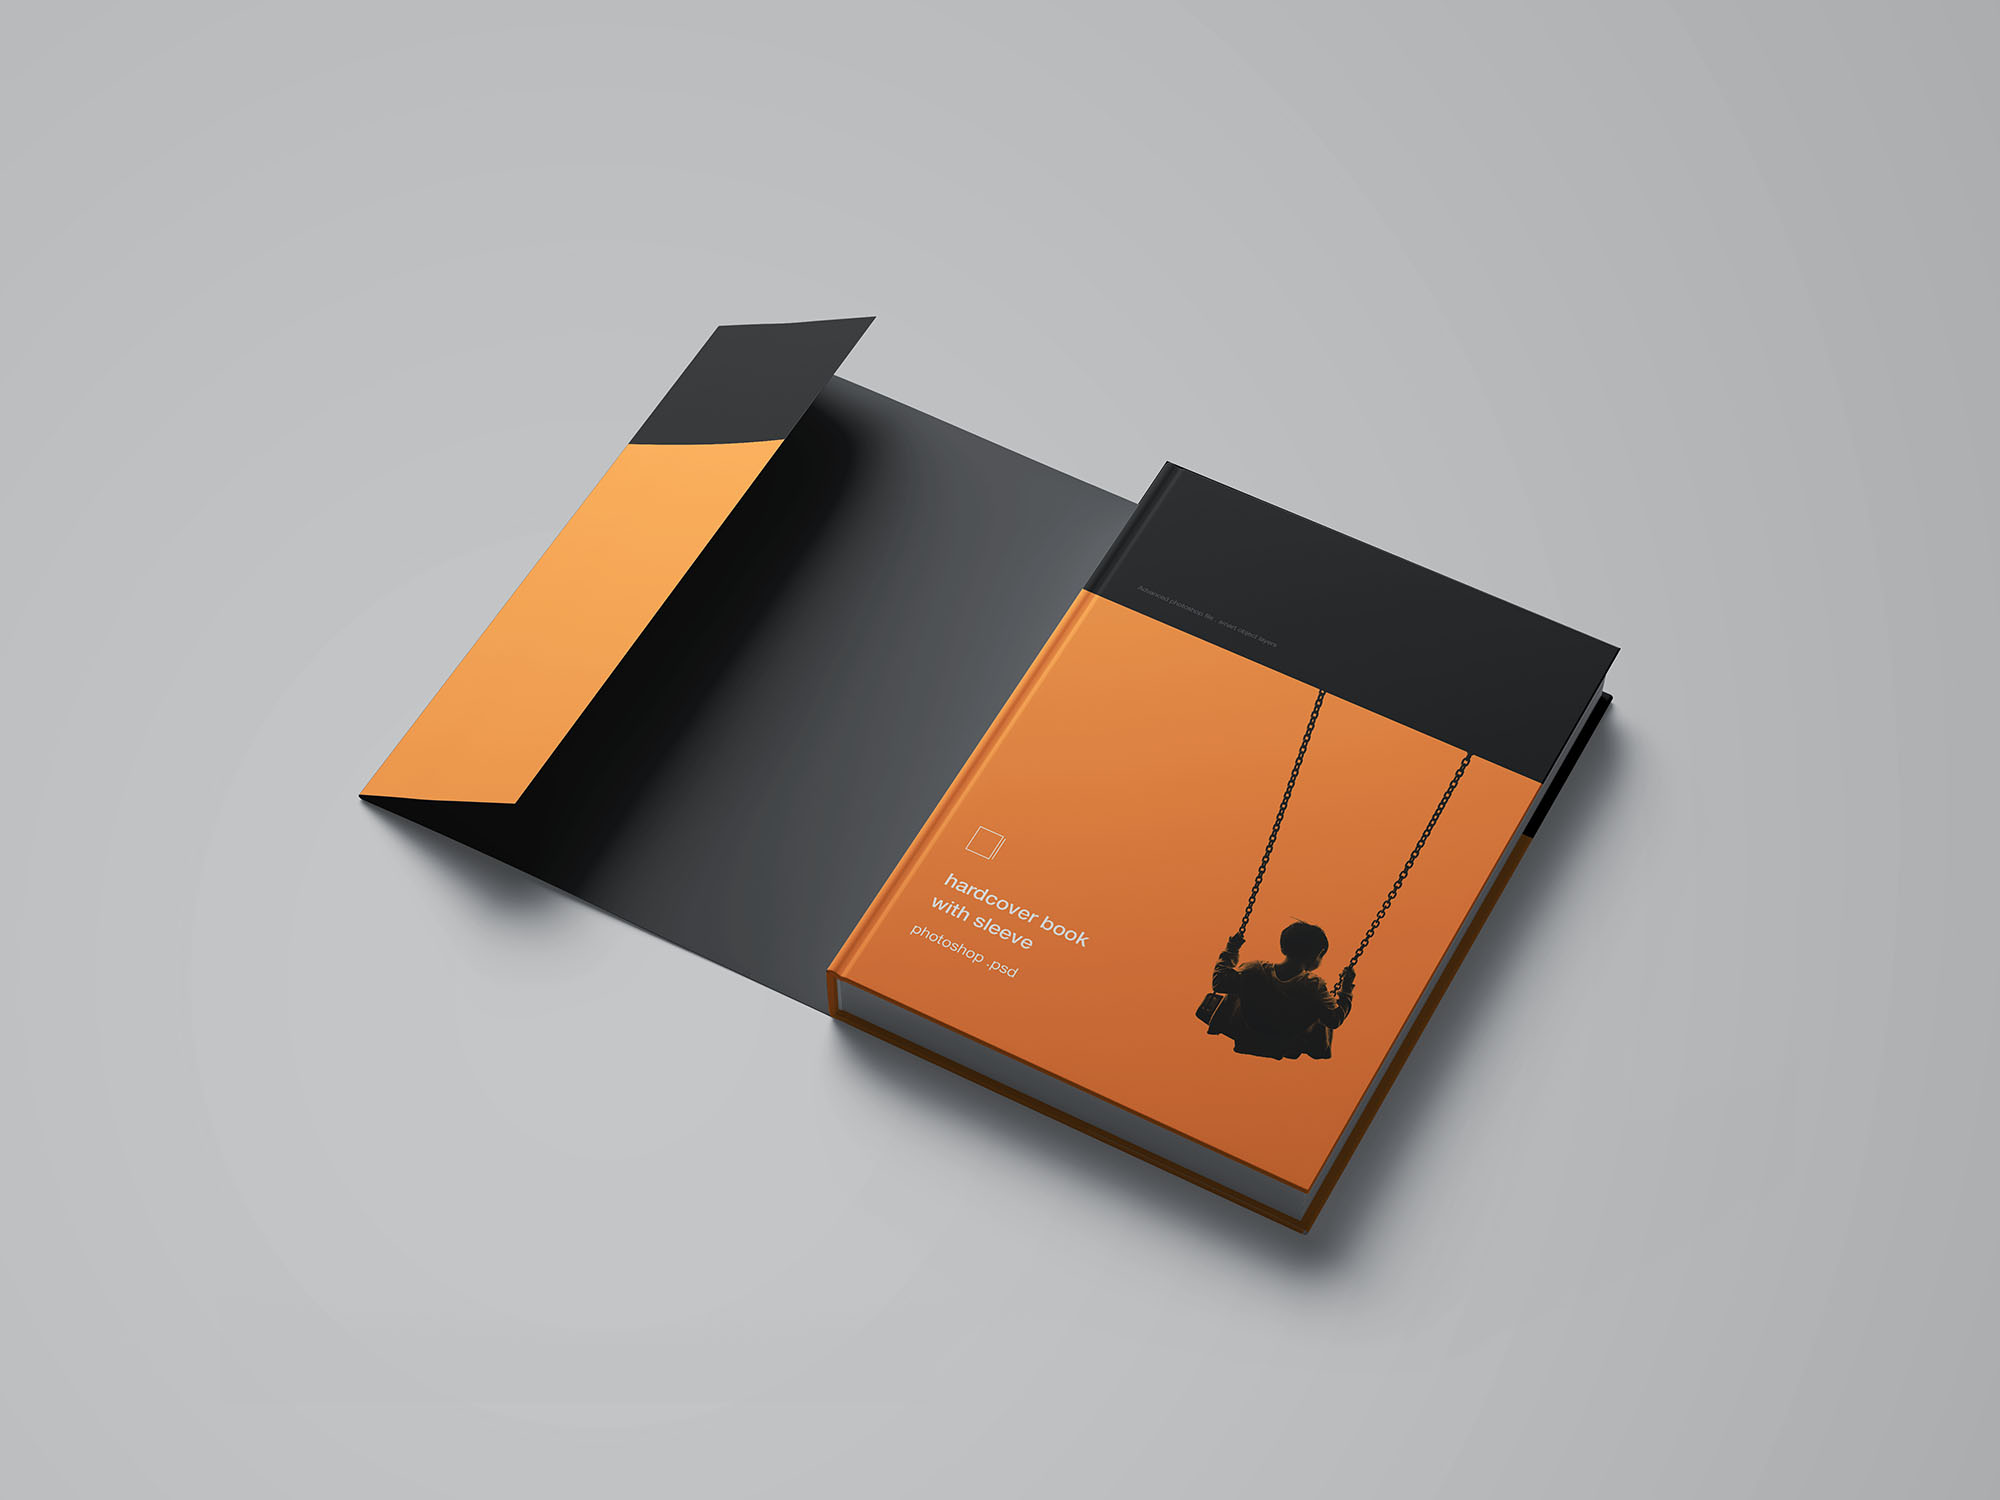 Hardcover Book with Sleeve Mockup